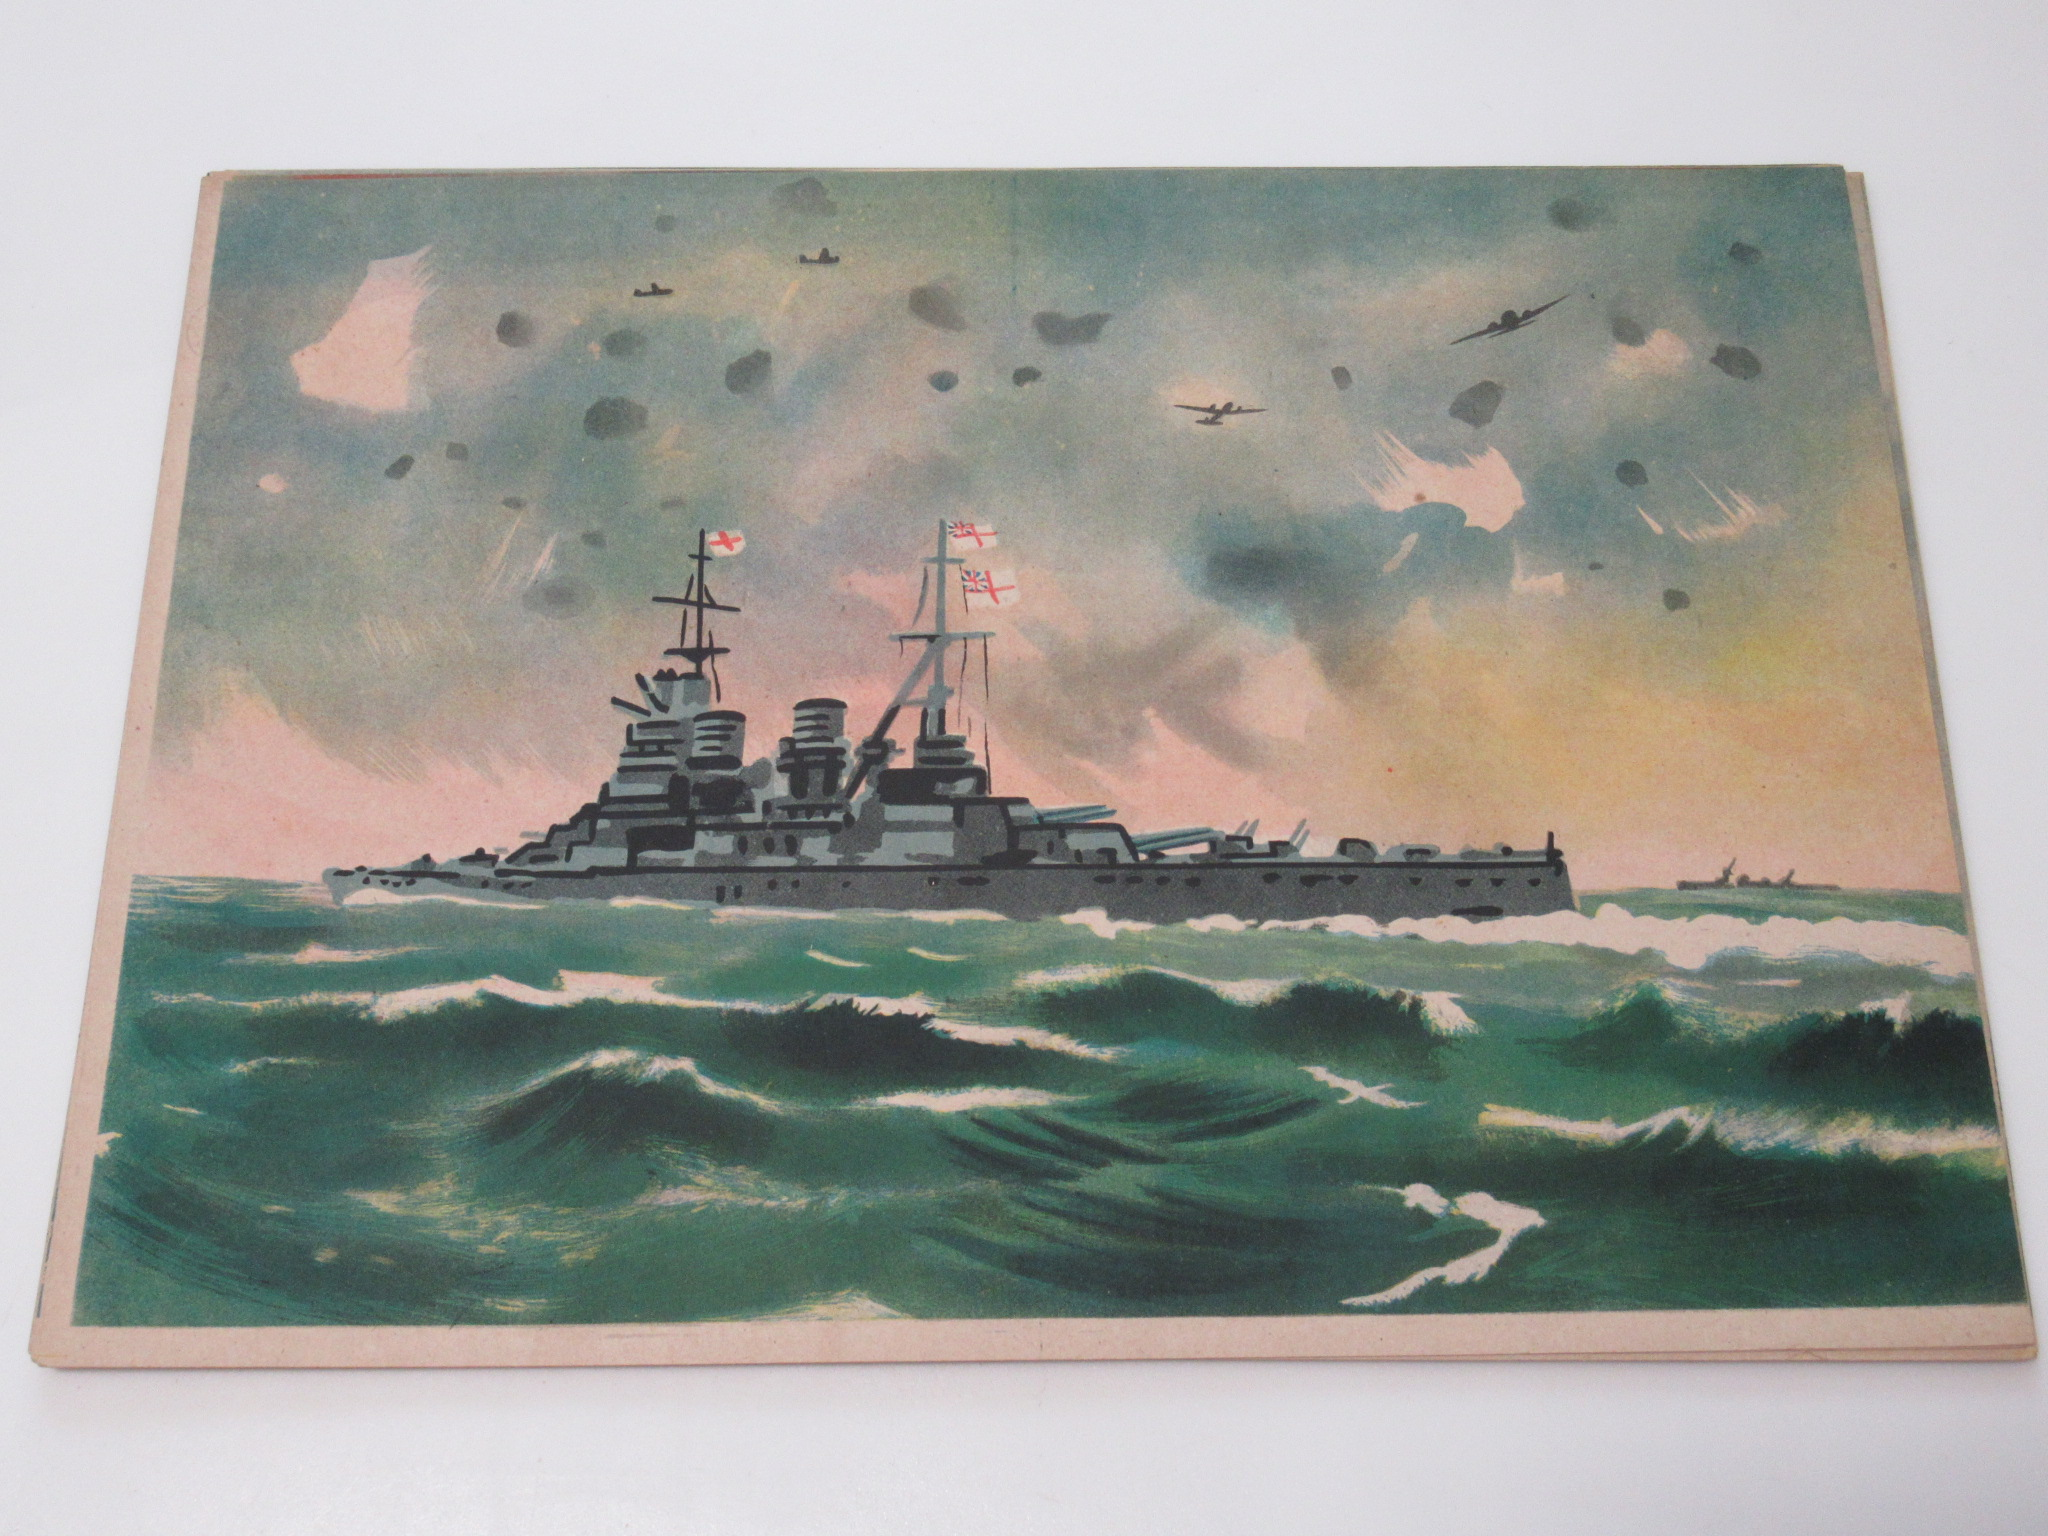 マレー沖海戦 紙芝居 Sinking of Prince of Wales and Repulse Naval Battle of Malaya picture story show Japan